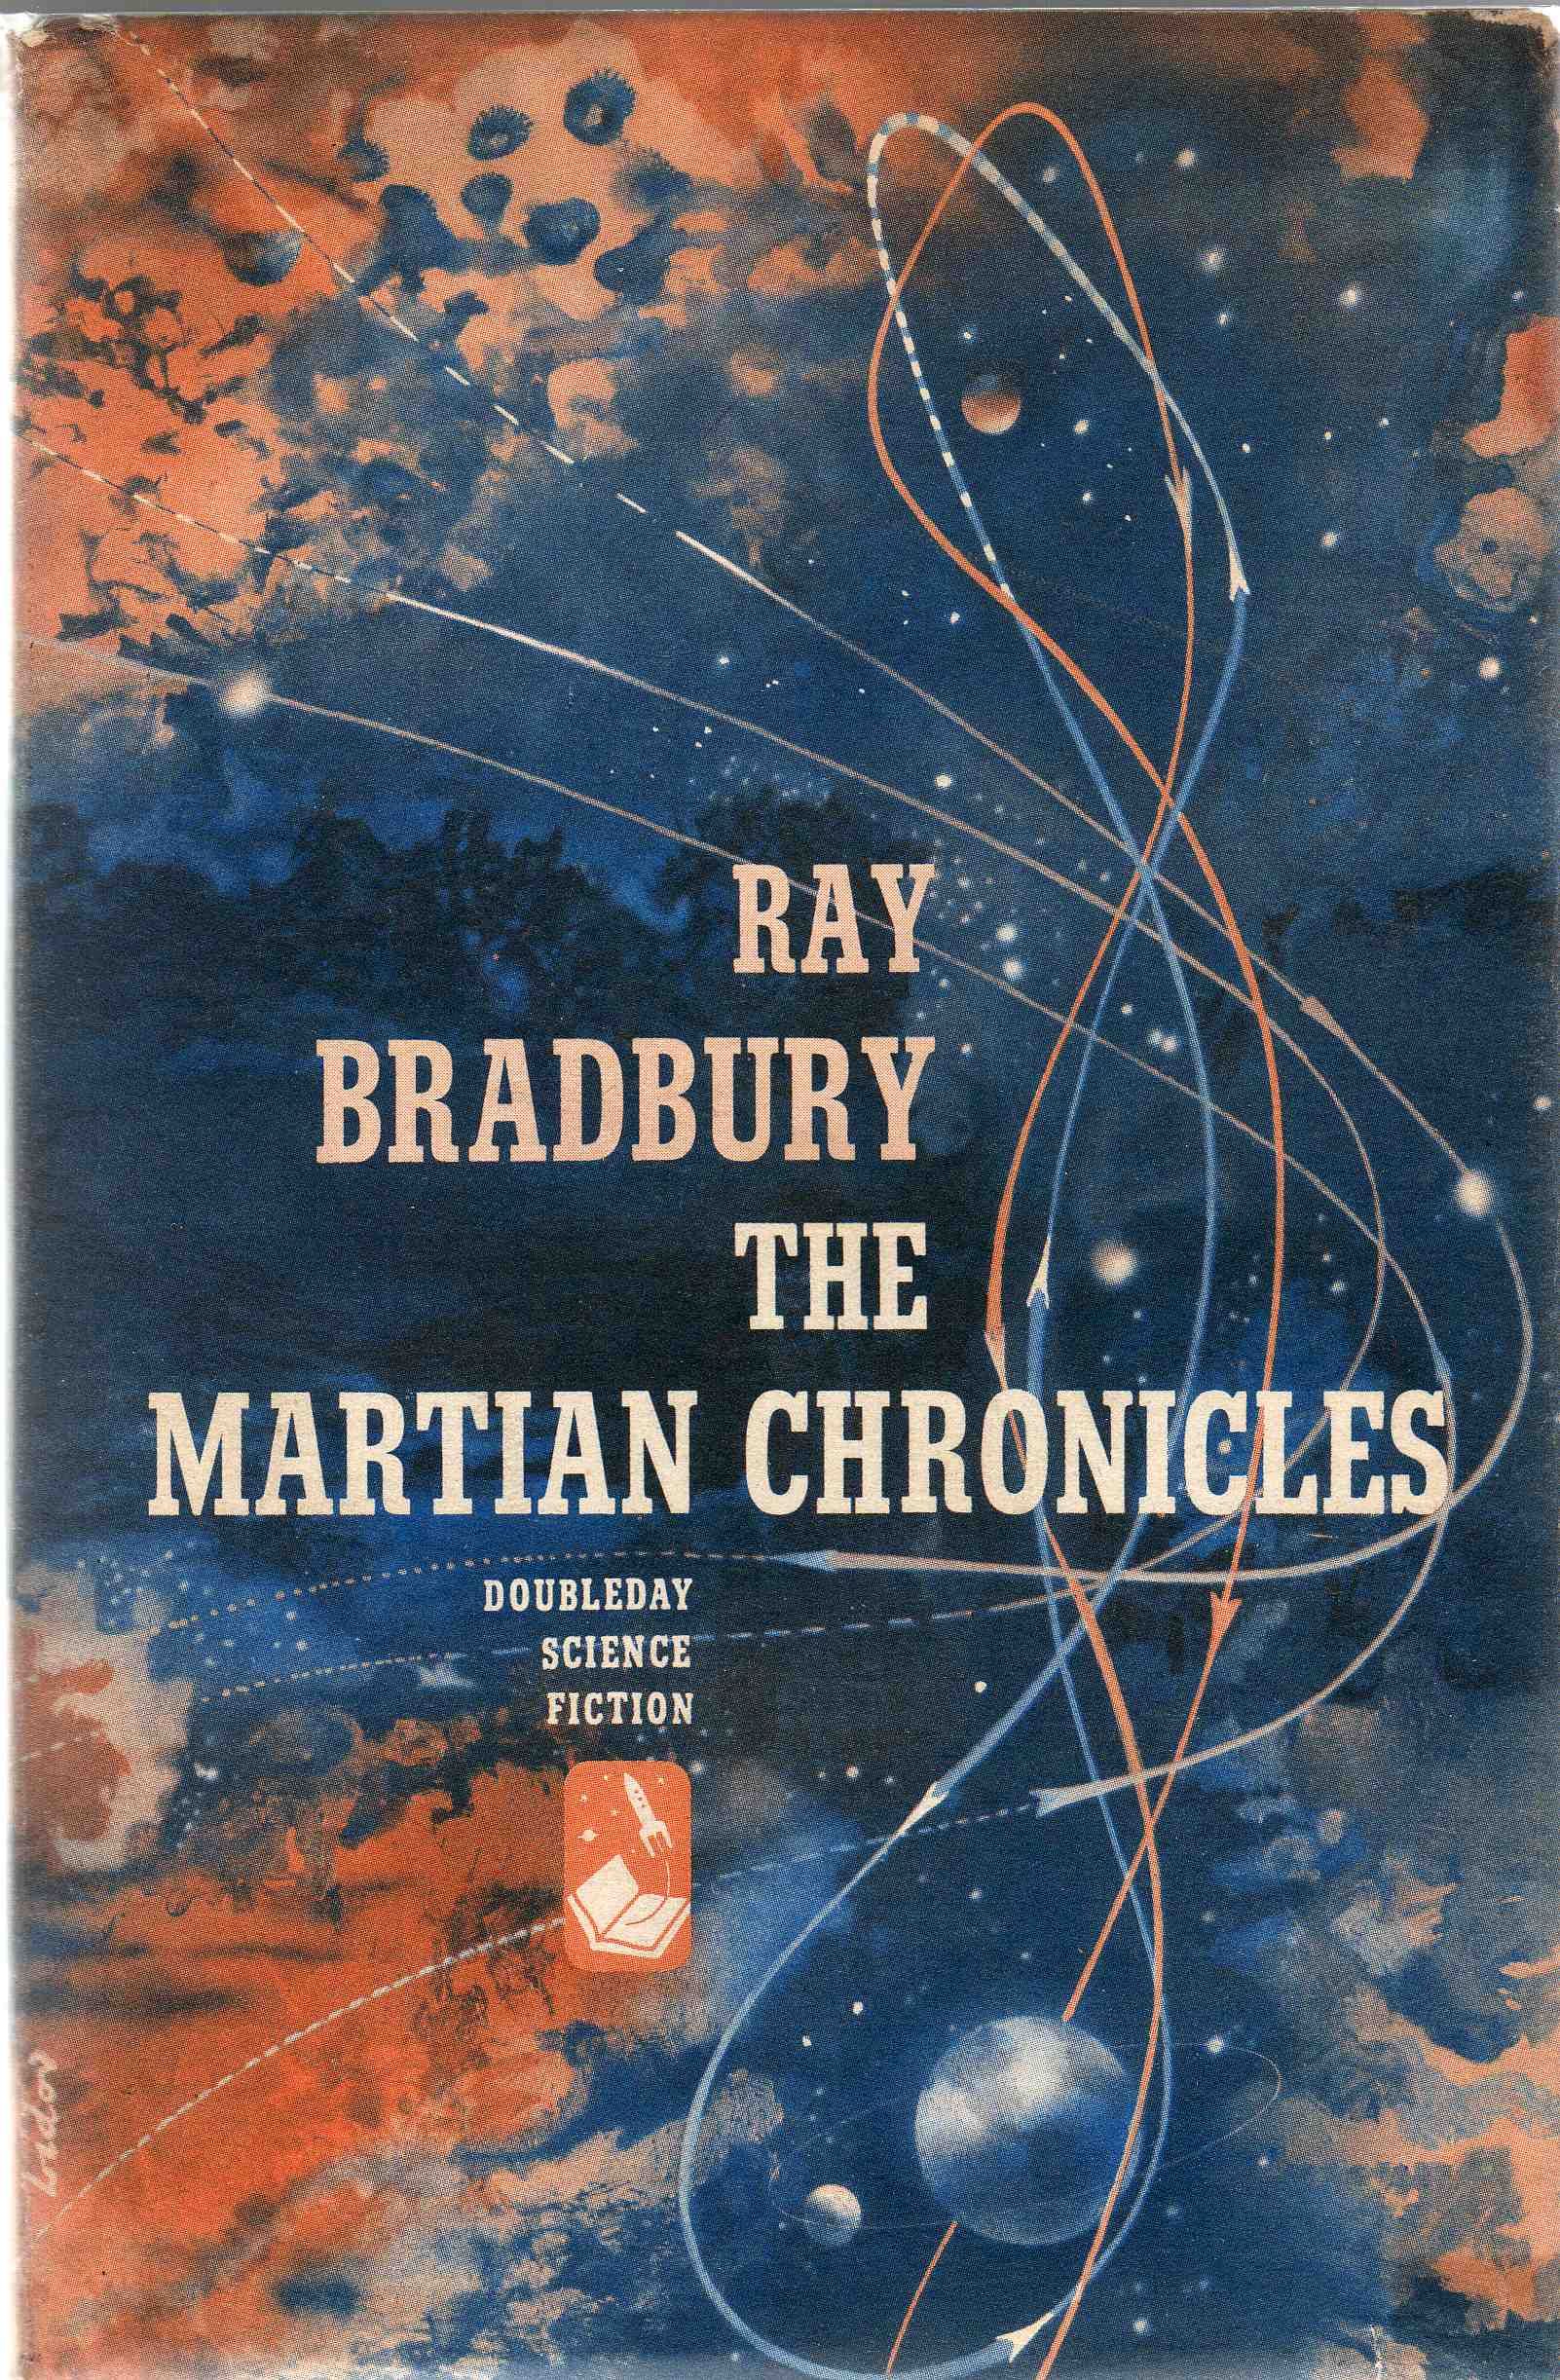 an analysis of dystopia in the works of ray bradbury The pedestrian - ray bradbury theme point of view the story is in a third person limited omniscient point of view it shows us leonard mead's thoughts and actions, but only the actions of the police car.